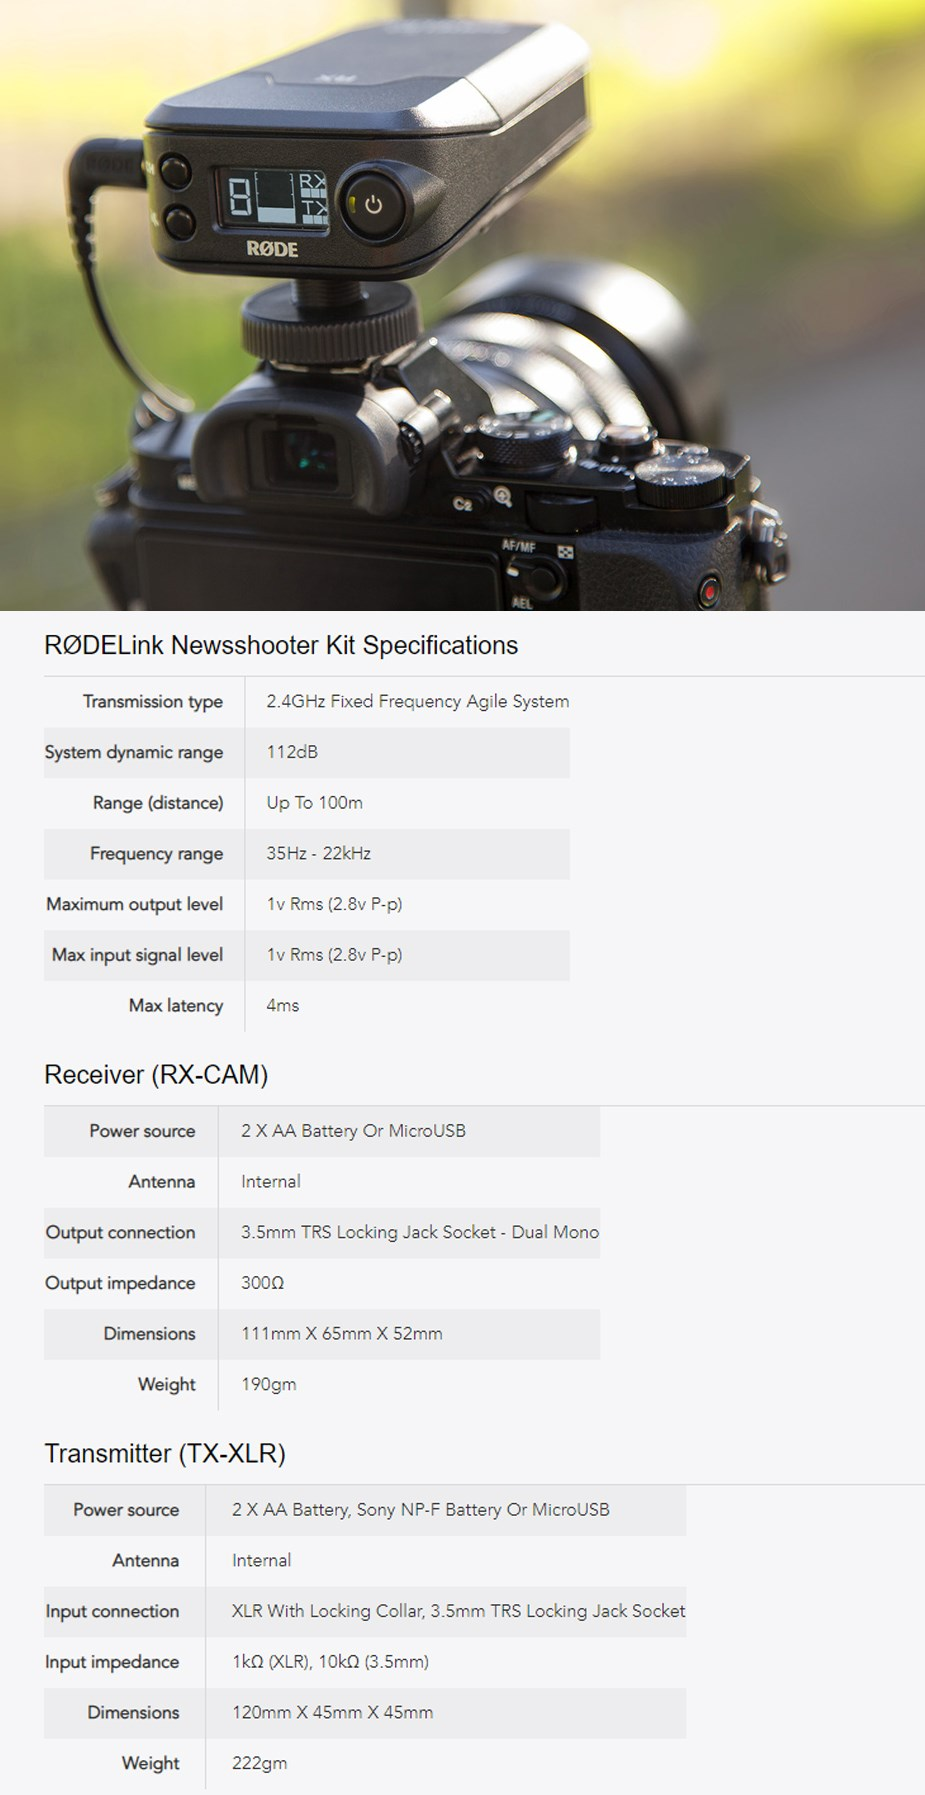 RODELink Newsshooter Wireless Microphone Kit - Overview 1